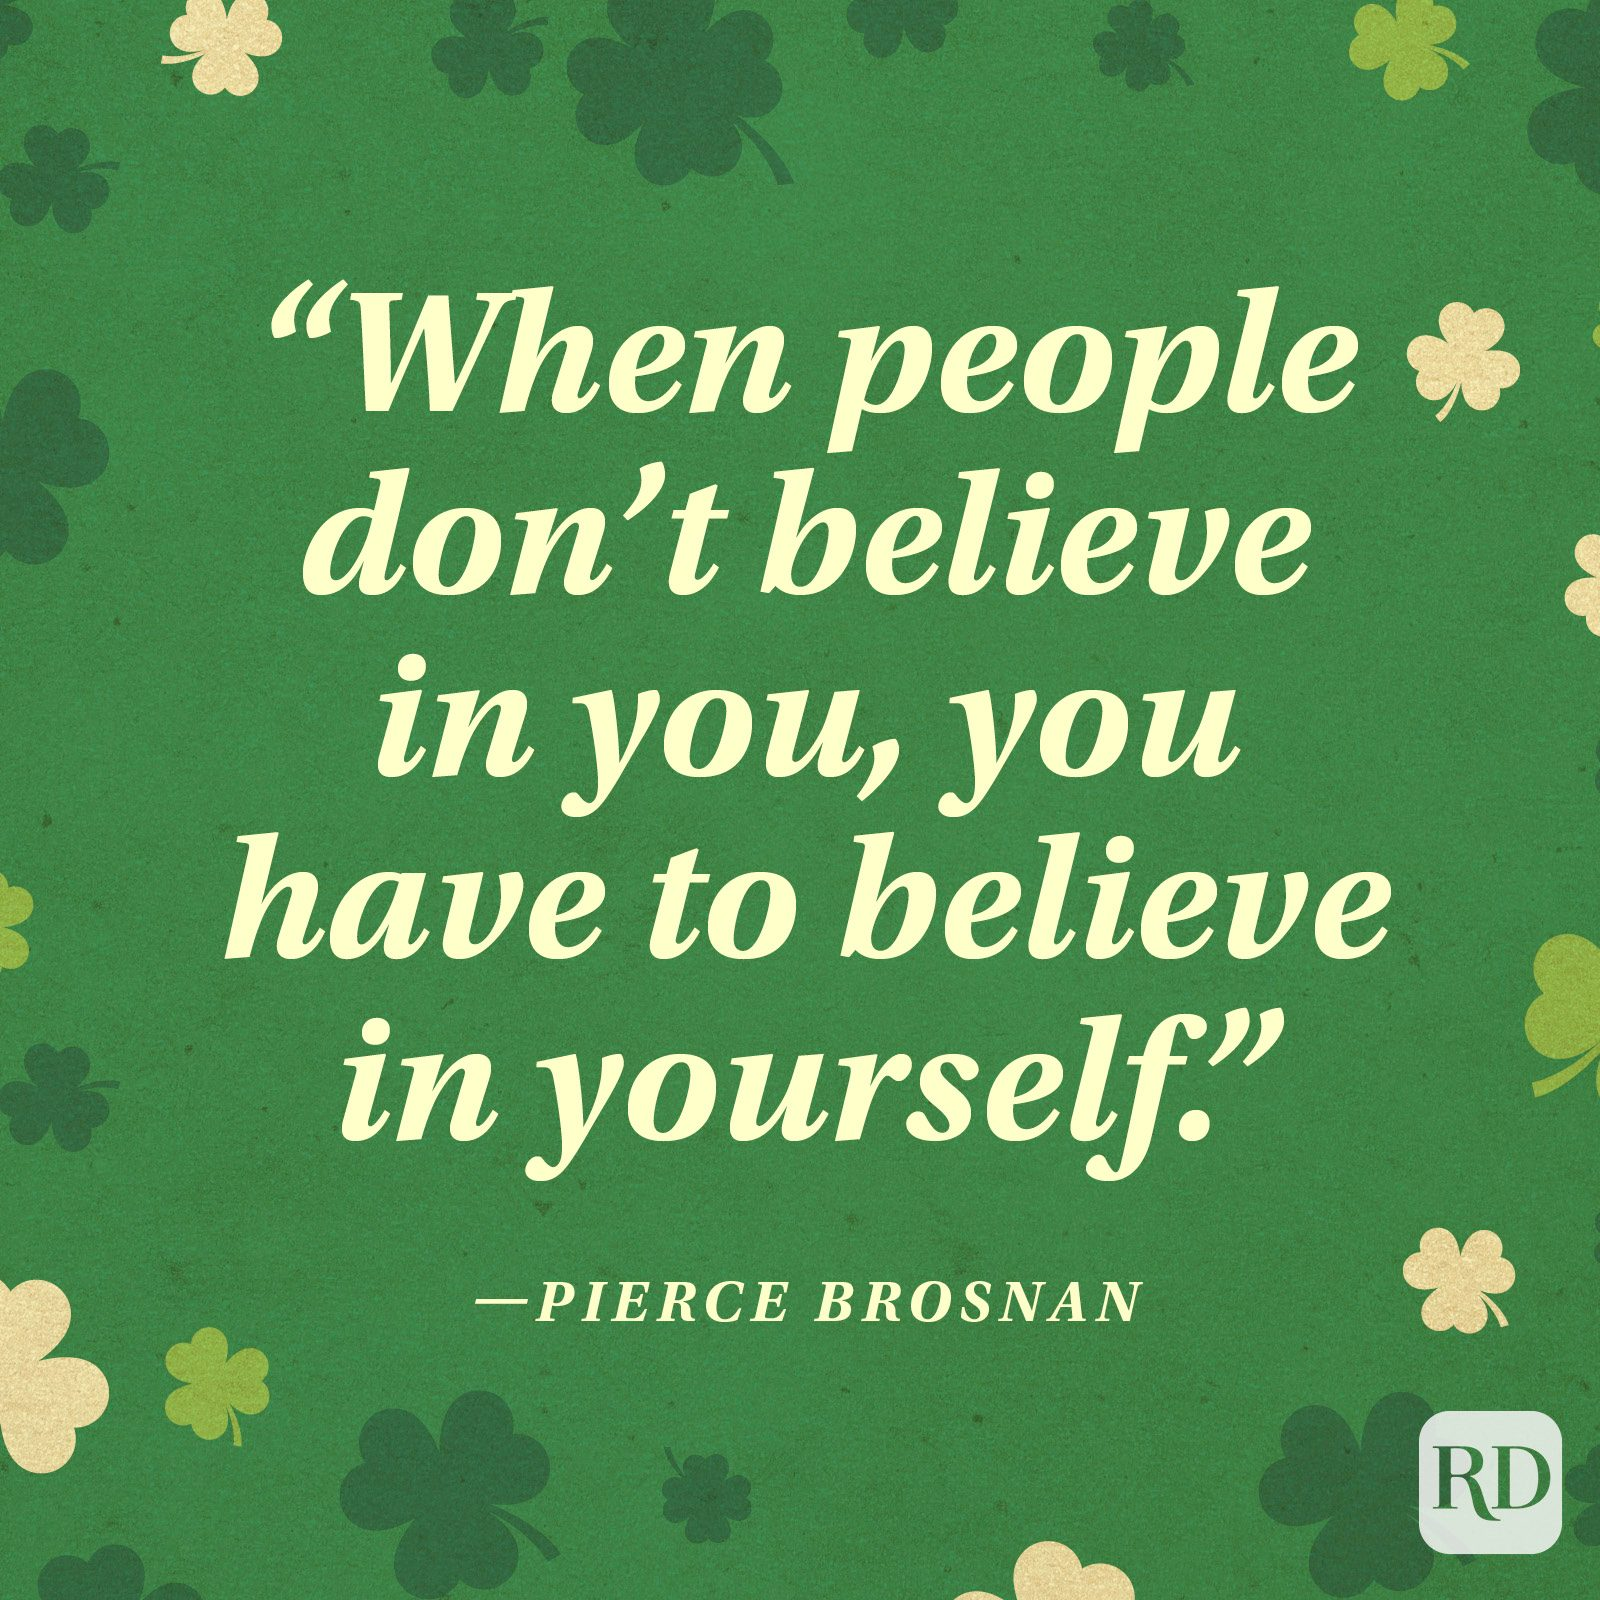 """When people don't believe in you, you have to believe in yourself."" —Pierce Brosnan"